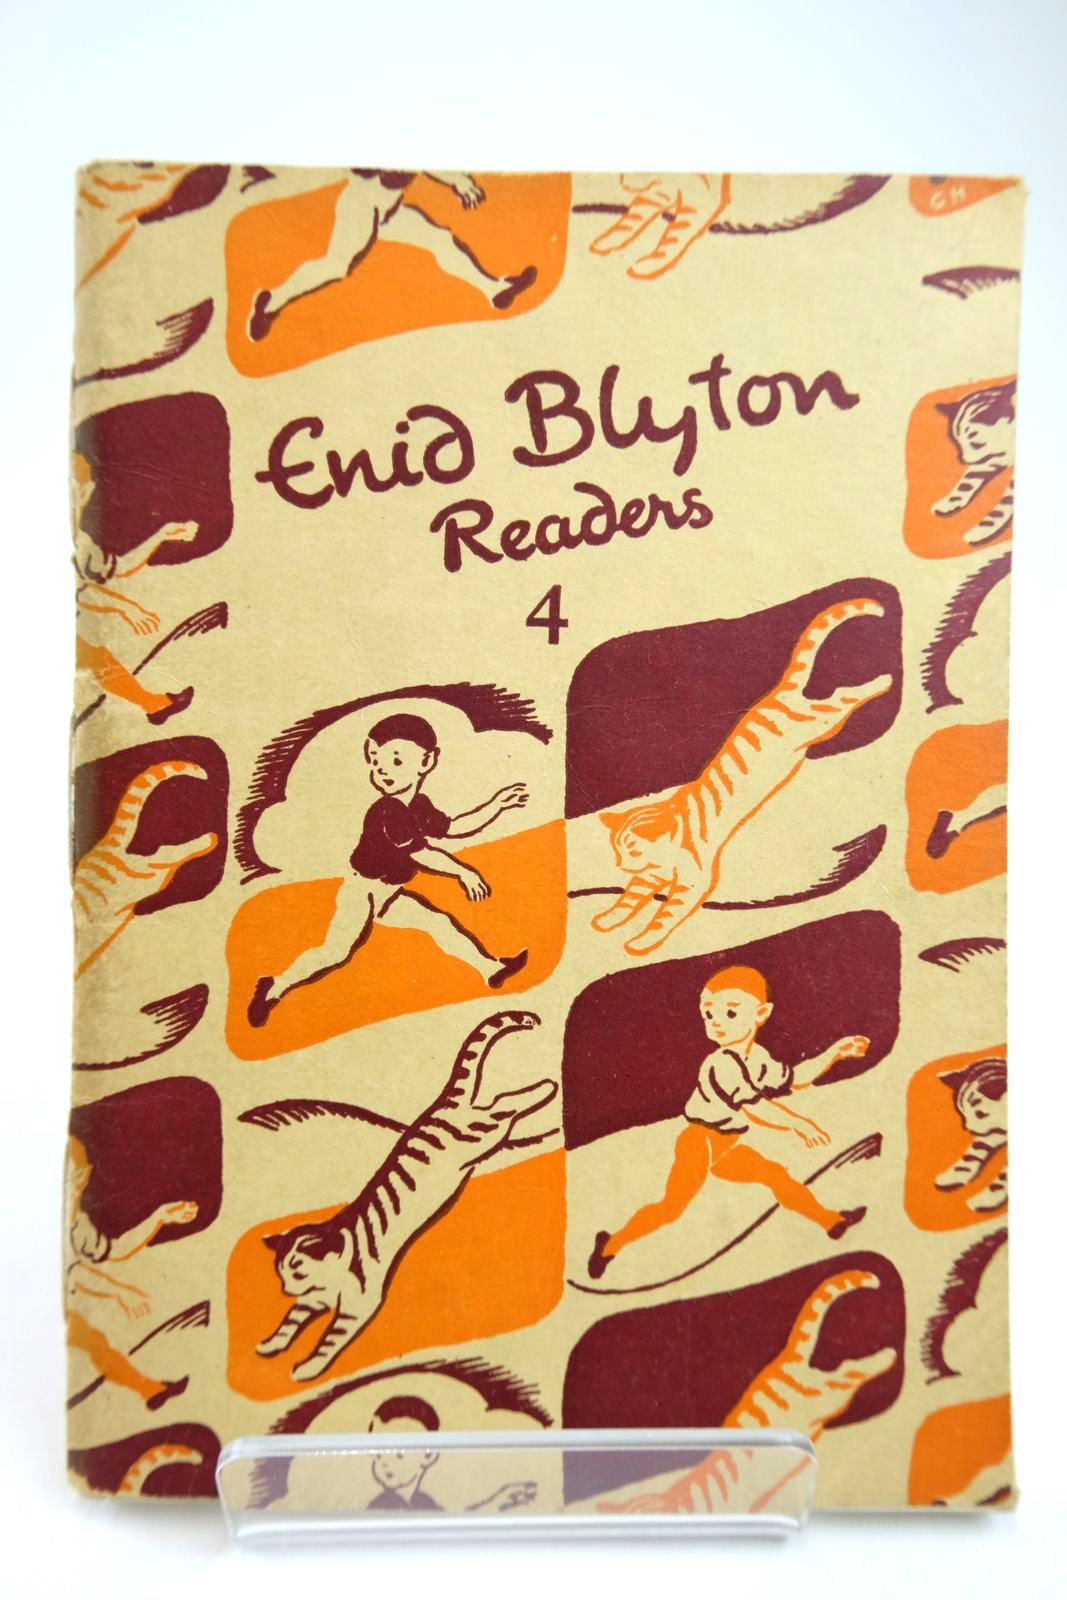 Photo of ENID BLYTON READERS 4 written by Blyton, Enid illustrated by Soper, Eileen published by Macmillan & Co. Ltd. (STOCK CODE: 2133408)  for sale by Stella & Rose's Books